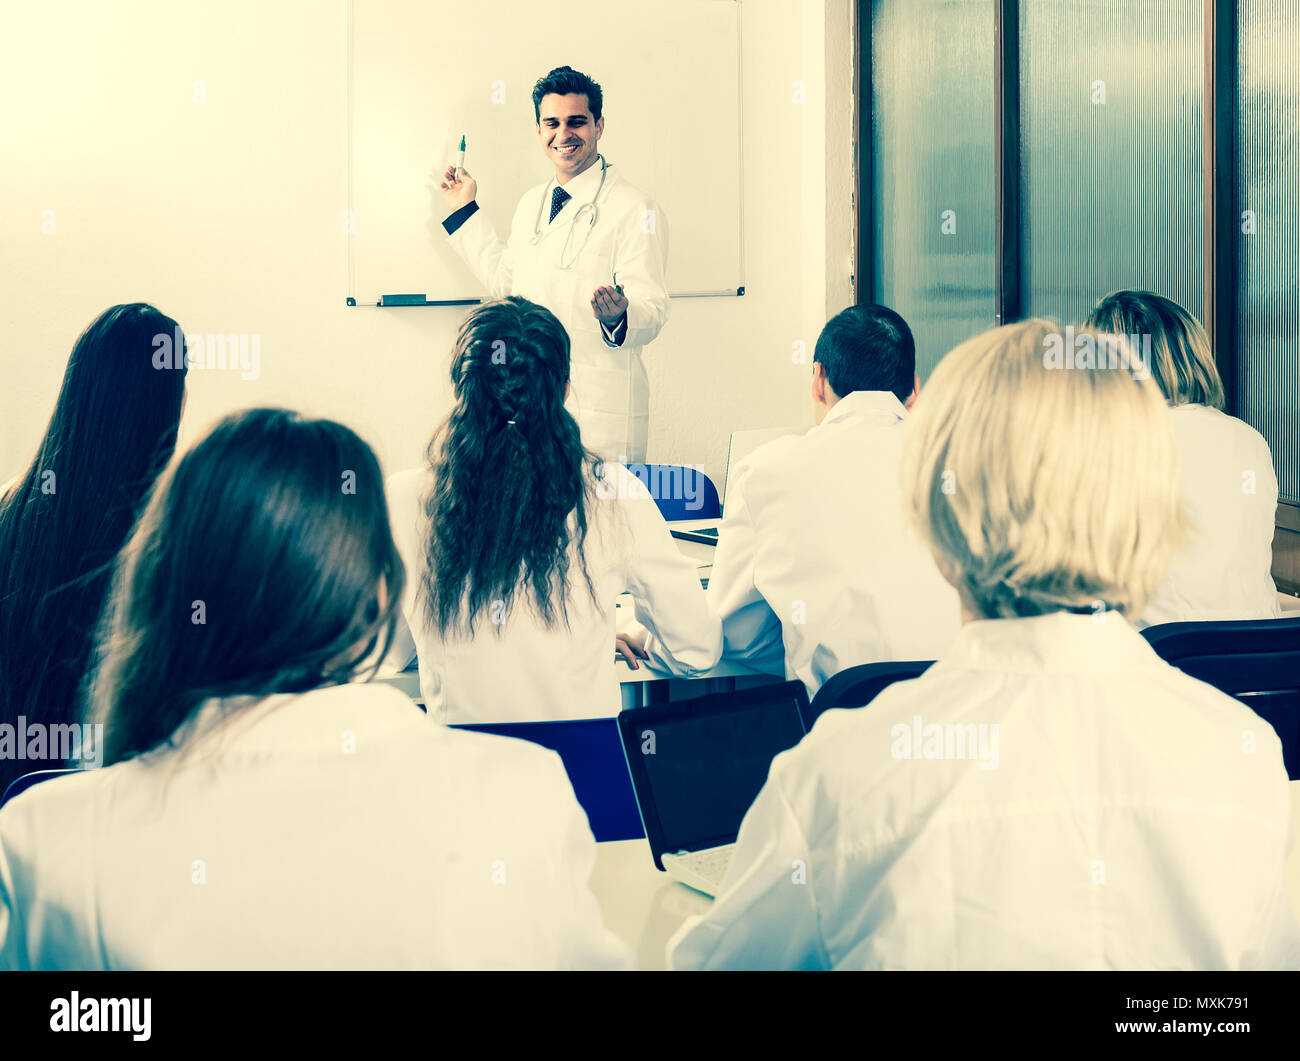 adult health-care workers during educational program in medical school